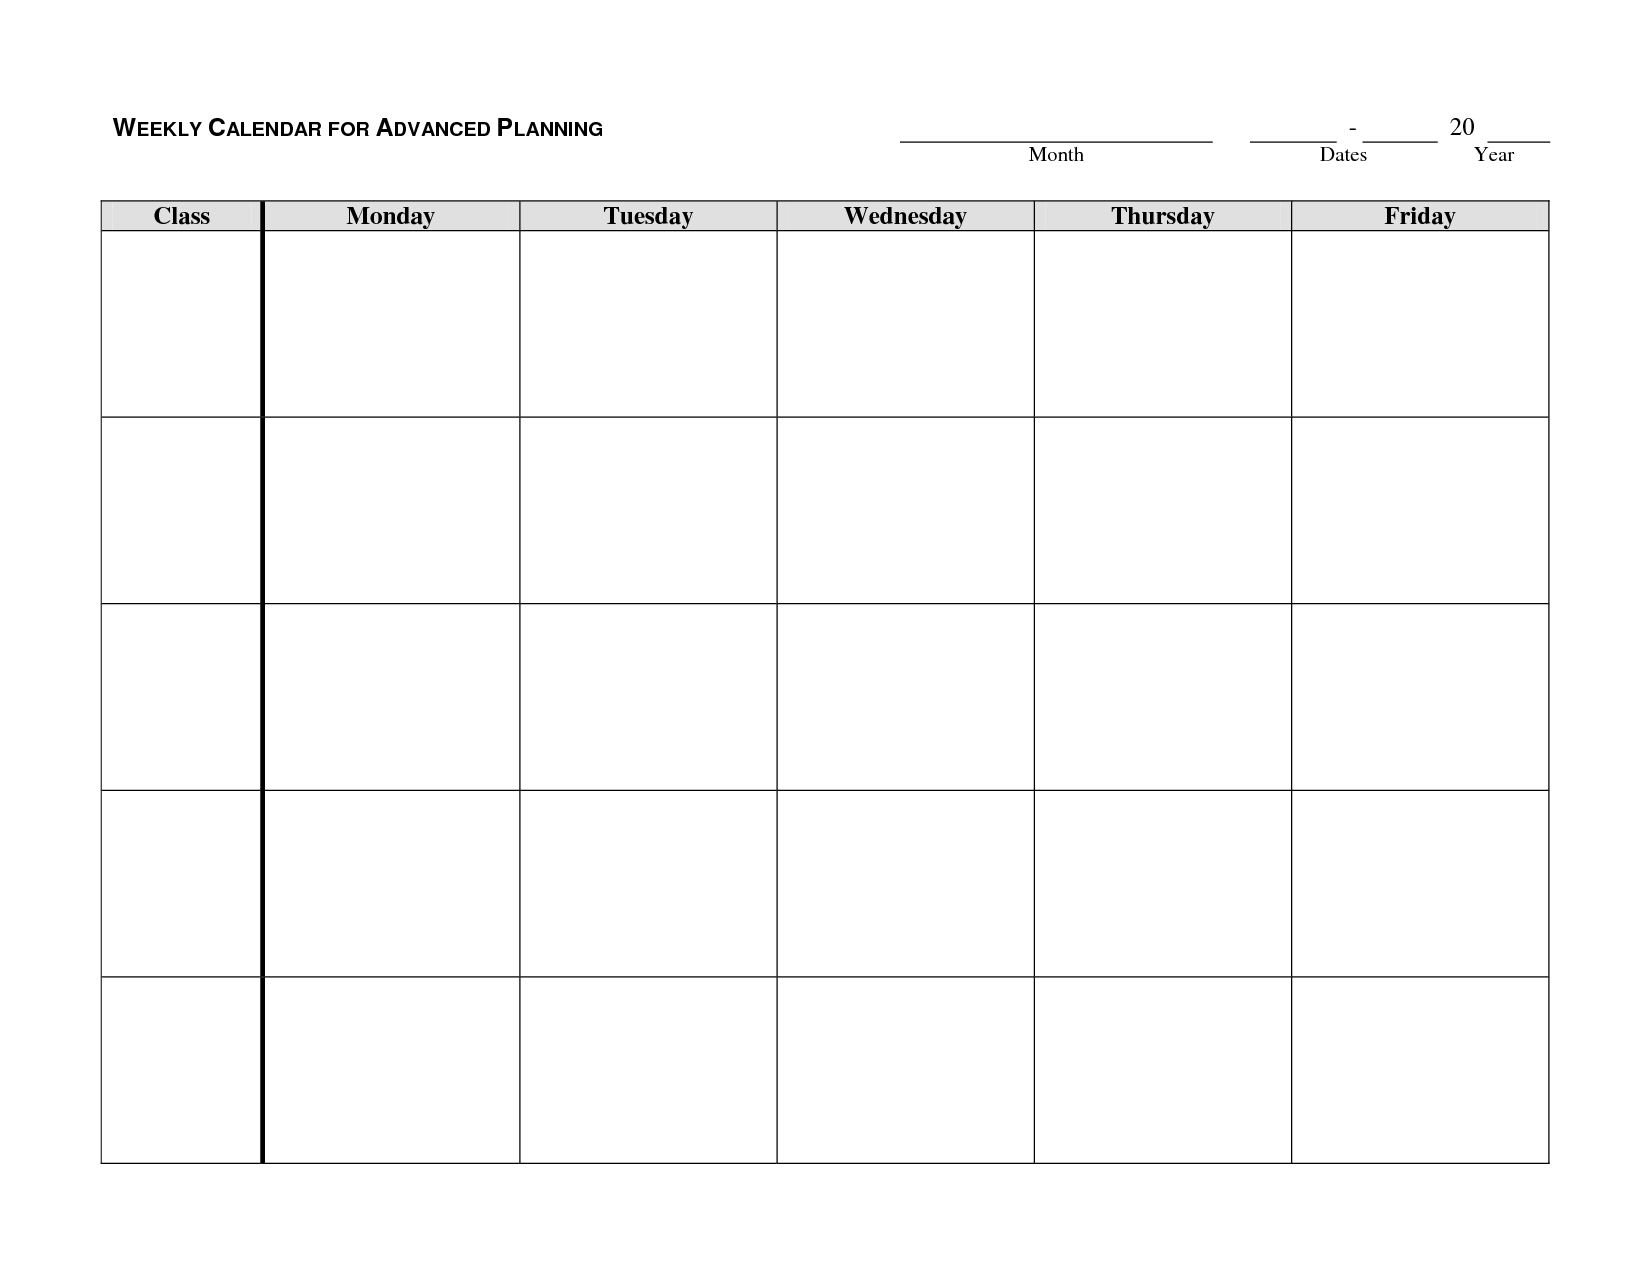 Blank Weekly Calendar Y Through Friday Schedule Template | Smorad within Monday Through Friday Blank Schedule Print Out